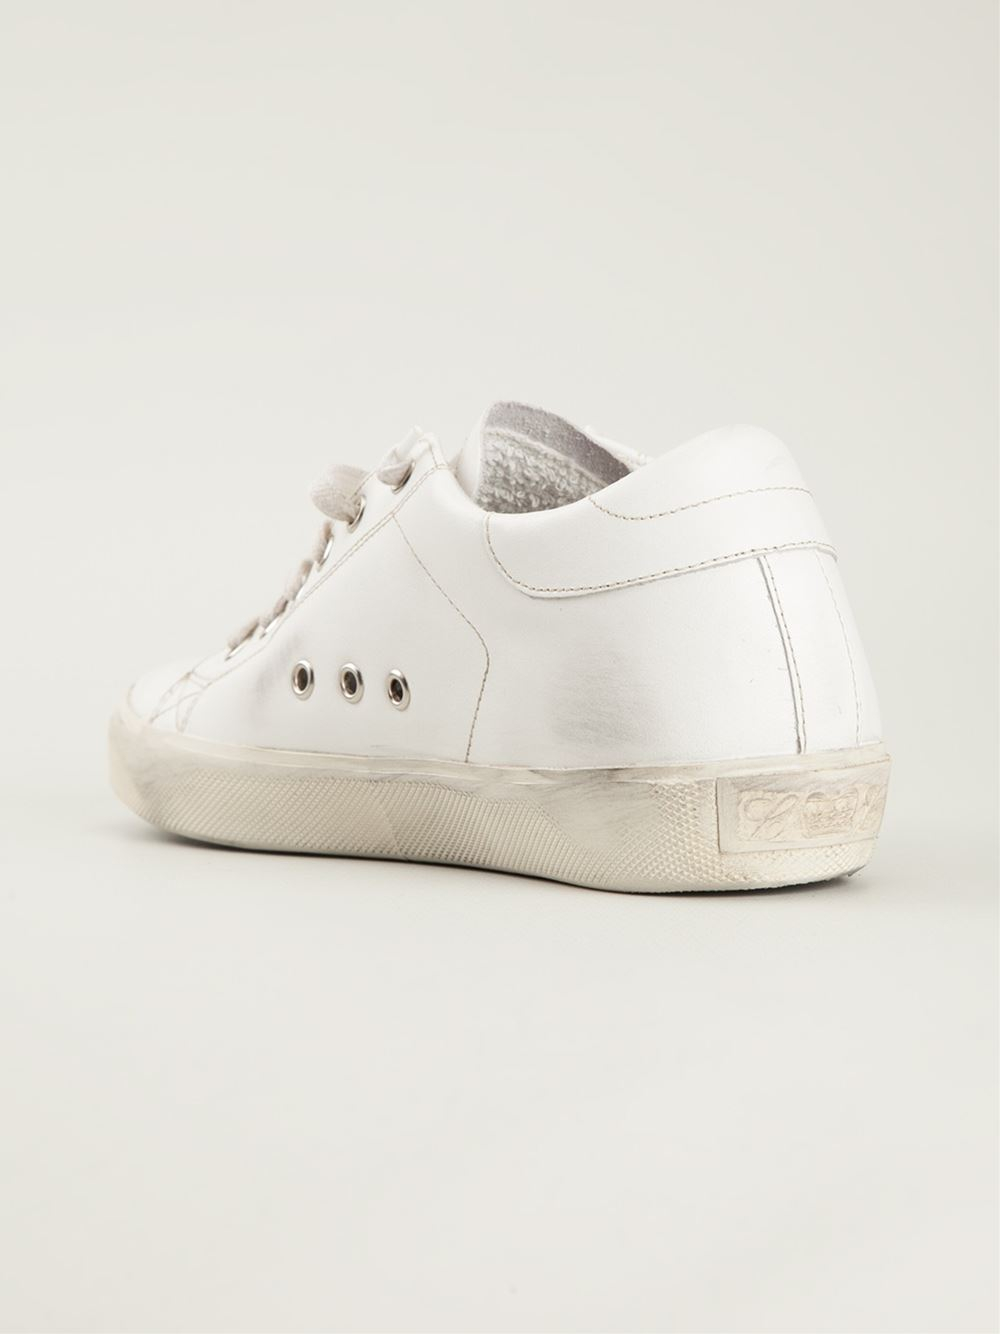 Leather Crown Distressed Sneakers in White